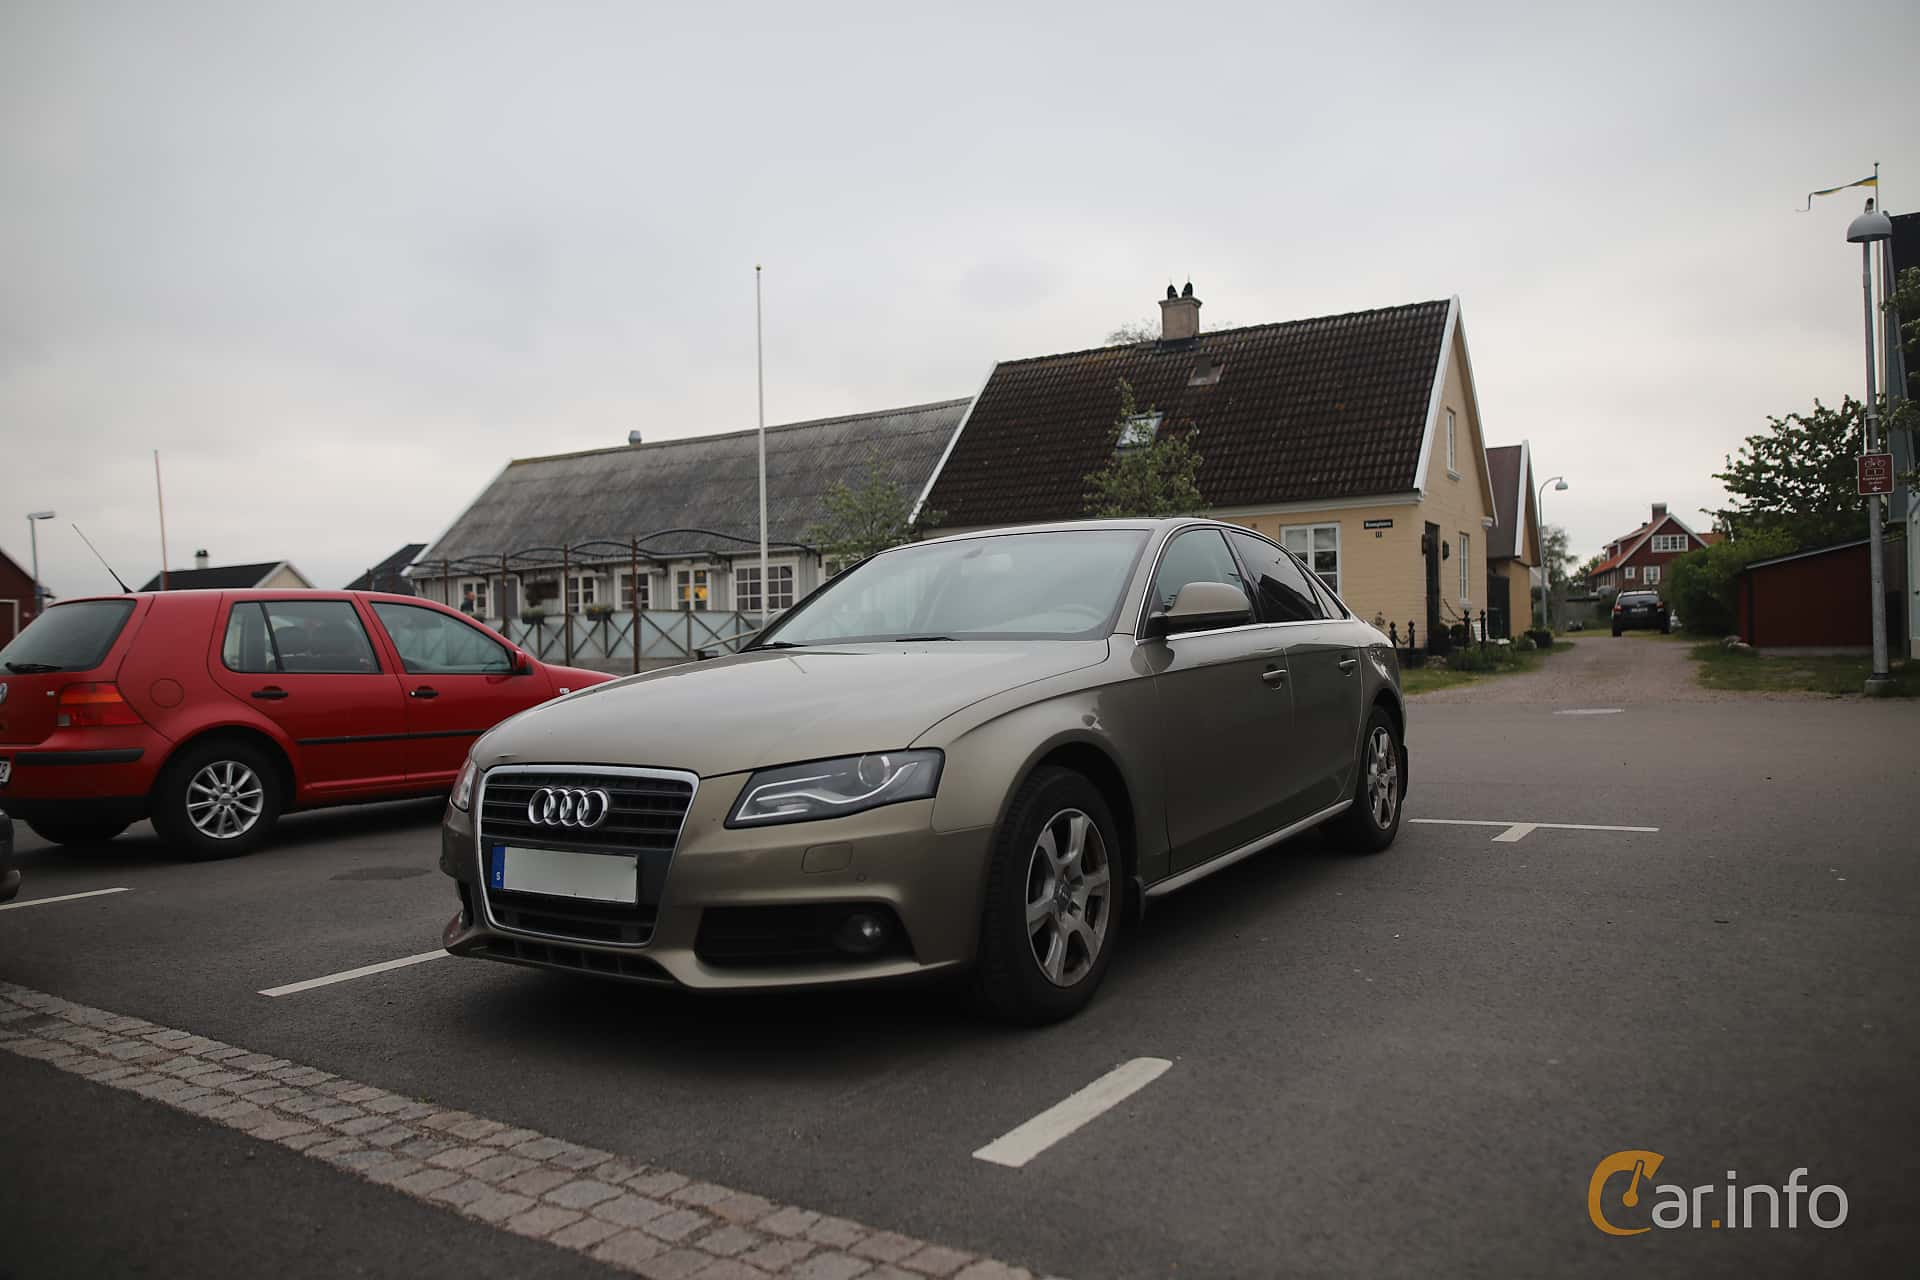 Audi A4 Sedan 1.8 TFSI Multitronic, 160hp, 2009